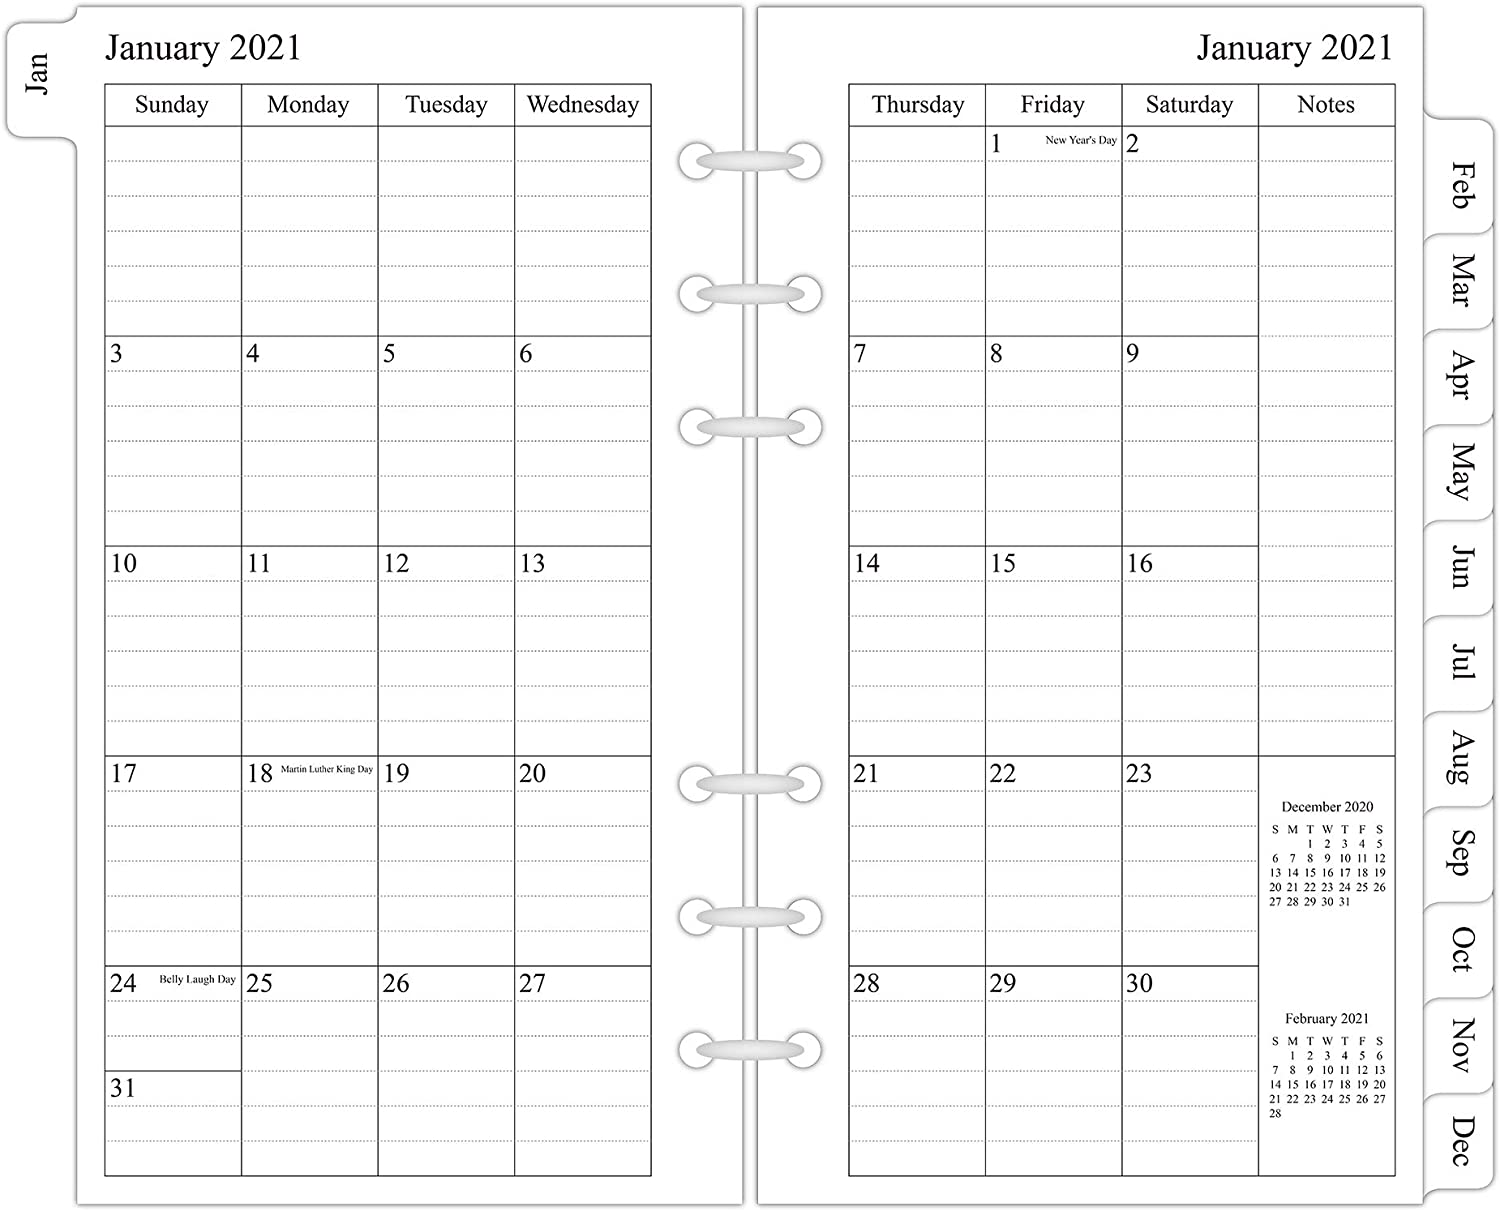 """2021 Monthly Planner Refill, 3-3/4"""" x 6-3/4"""", Two Page Per Month, January 2021 - December 2021, Personal Size/Size 3"""